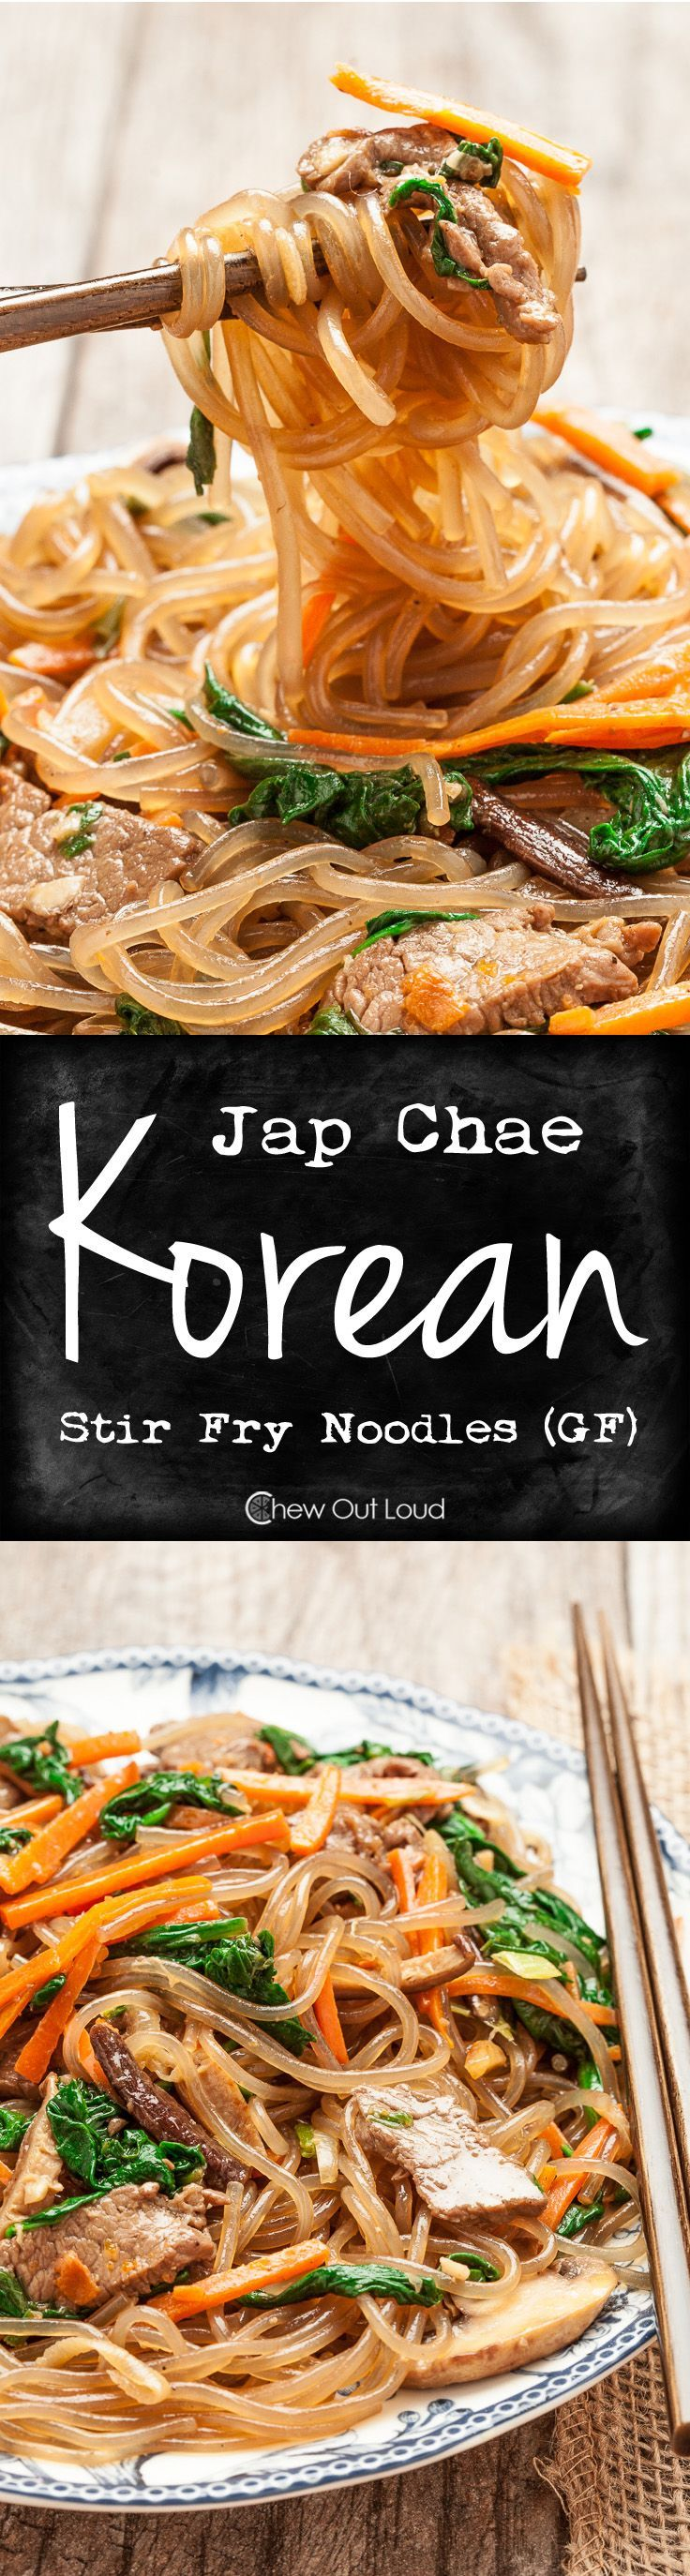 Jap Chae (Korean Stir Fry Noodles - GF) - Healthy, flavorful, chewy, and totally addictive. The first thing to disappear at any potluck. #recipe #asian (Low Carb Protein Meat)